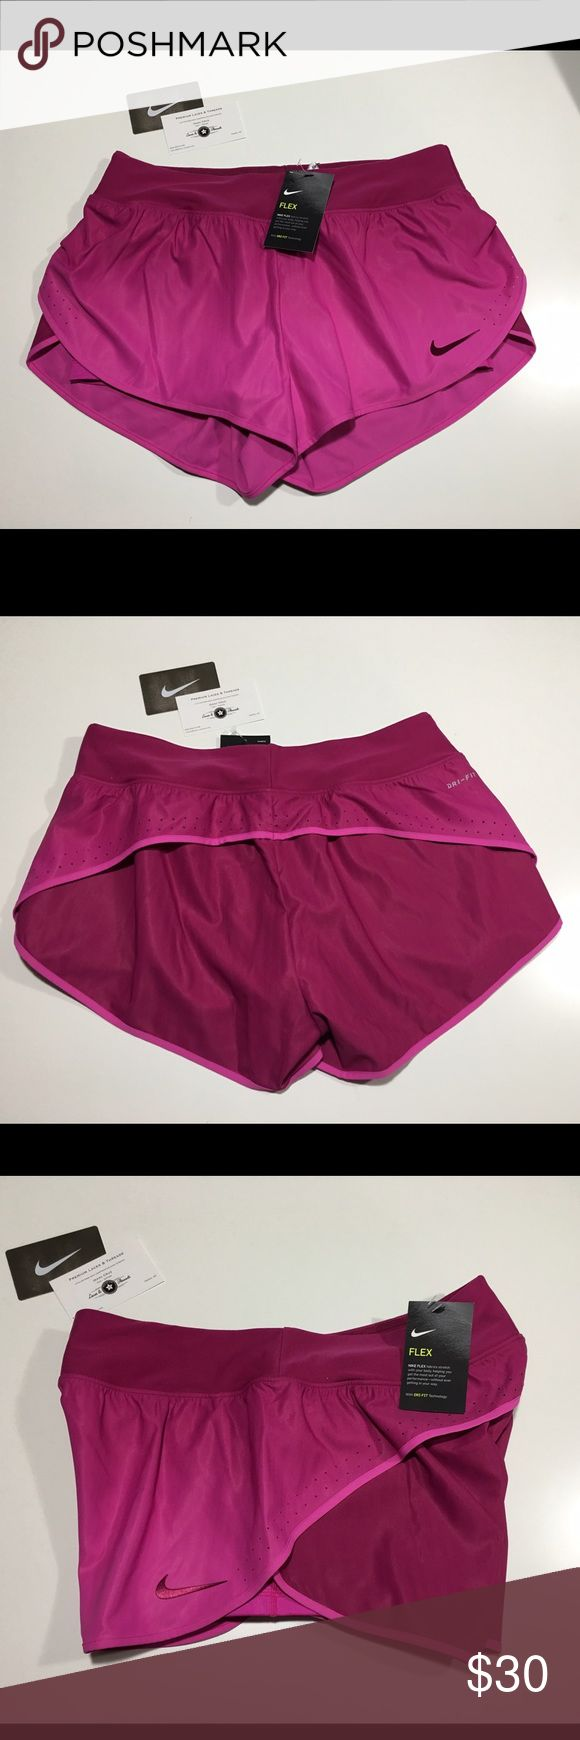 Nike Court Flex Ace Women's Tennis Shorts 801617 Brand new with tags. Directly from Nike. Orders will be shipped out the following day excluding Saturday and Sunday's. if you have any questions send them my way. Always open to fair offers. But I'm not able to accommodate trades because this is inventory from my eBay store. Thanks for Looking! Nike Shorts